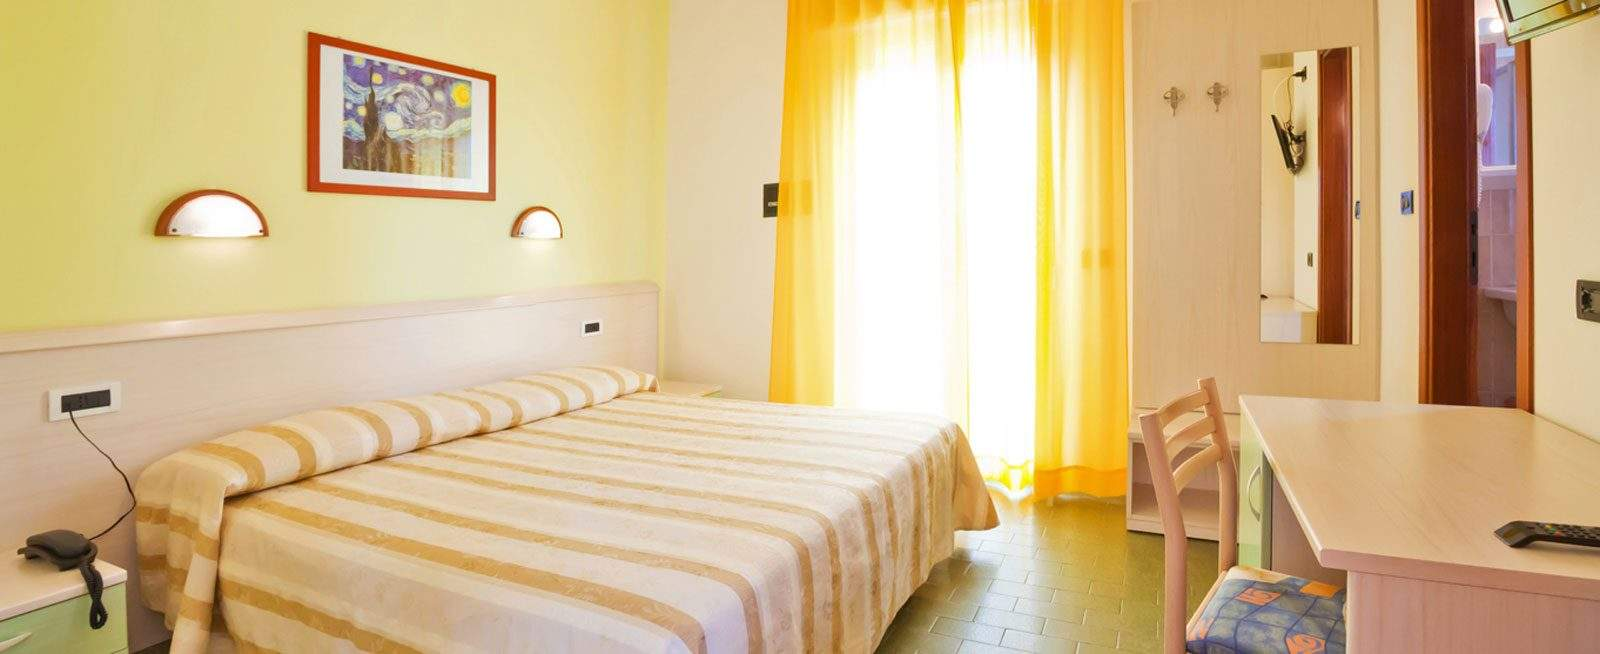 Hotel Angelo Caorle -hotel 3 stelle- SITO UFFICIALE